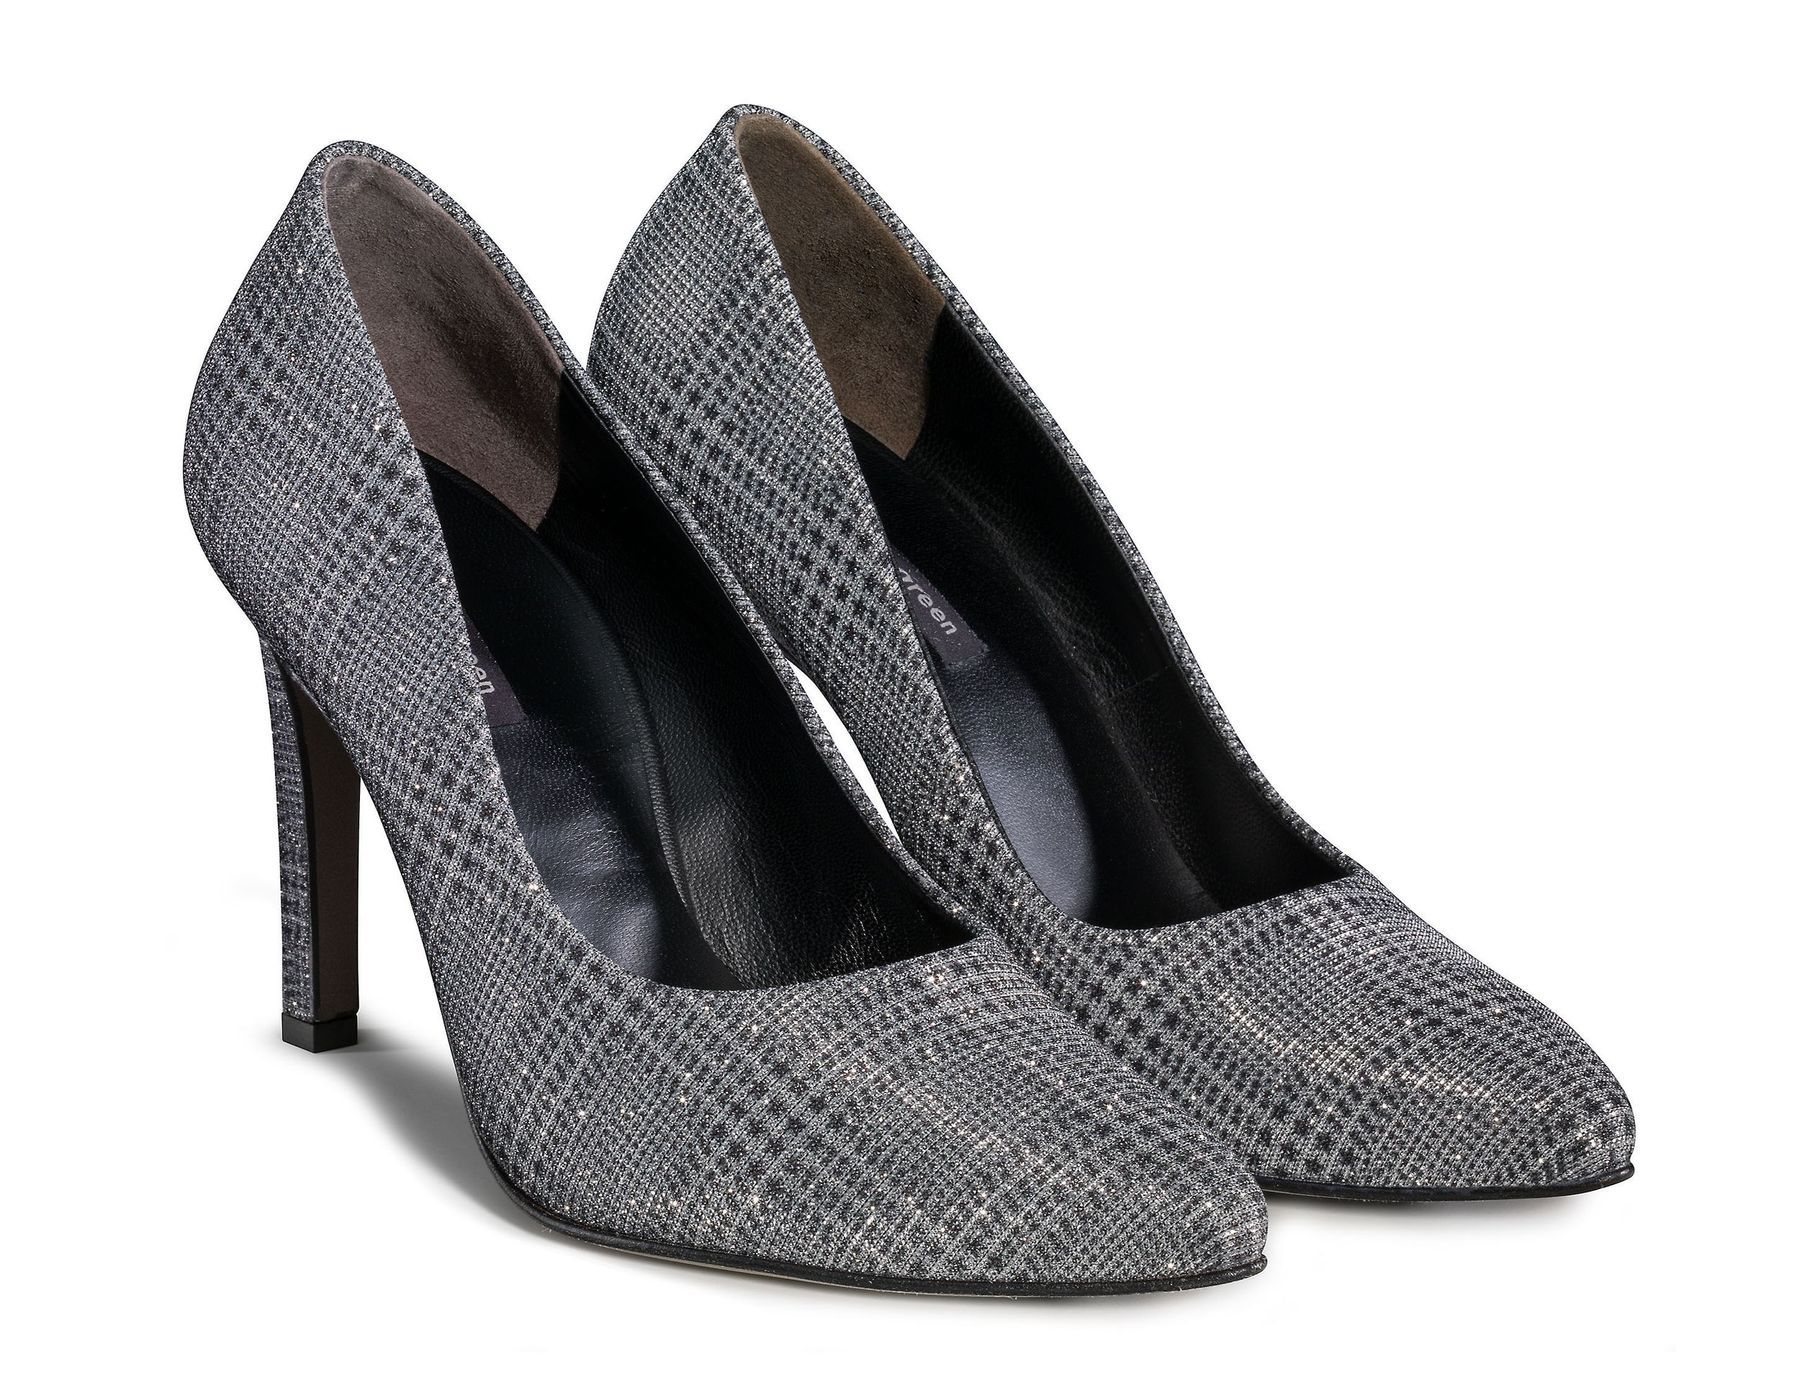 grey-black with checked - Paul Green